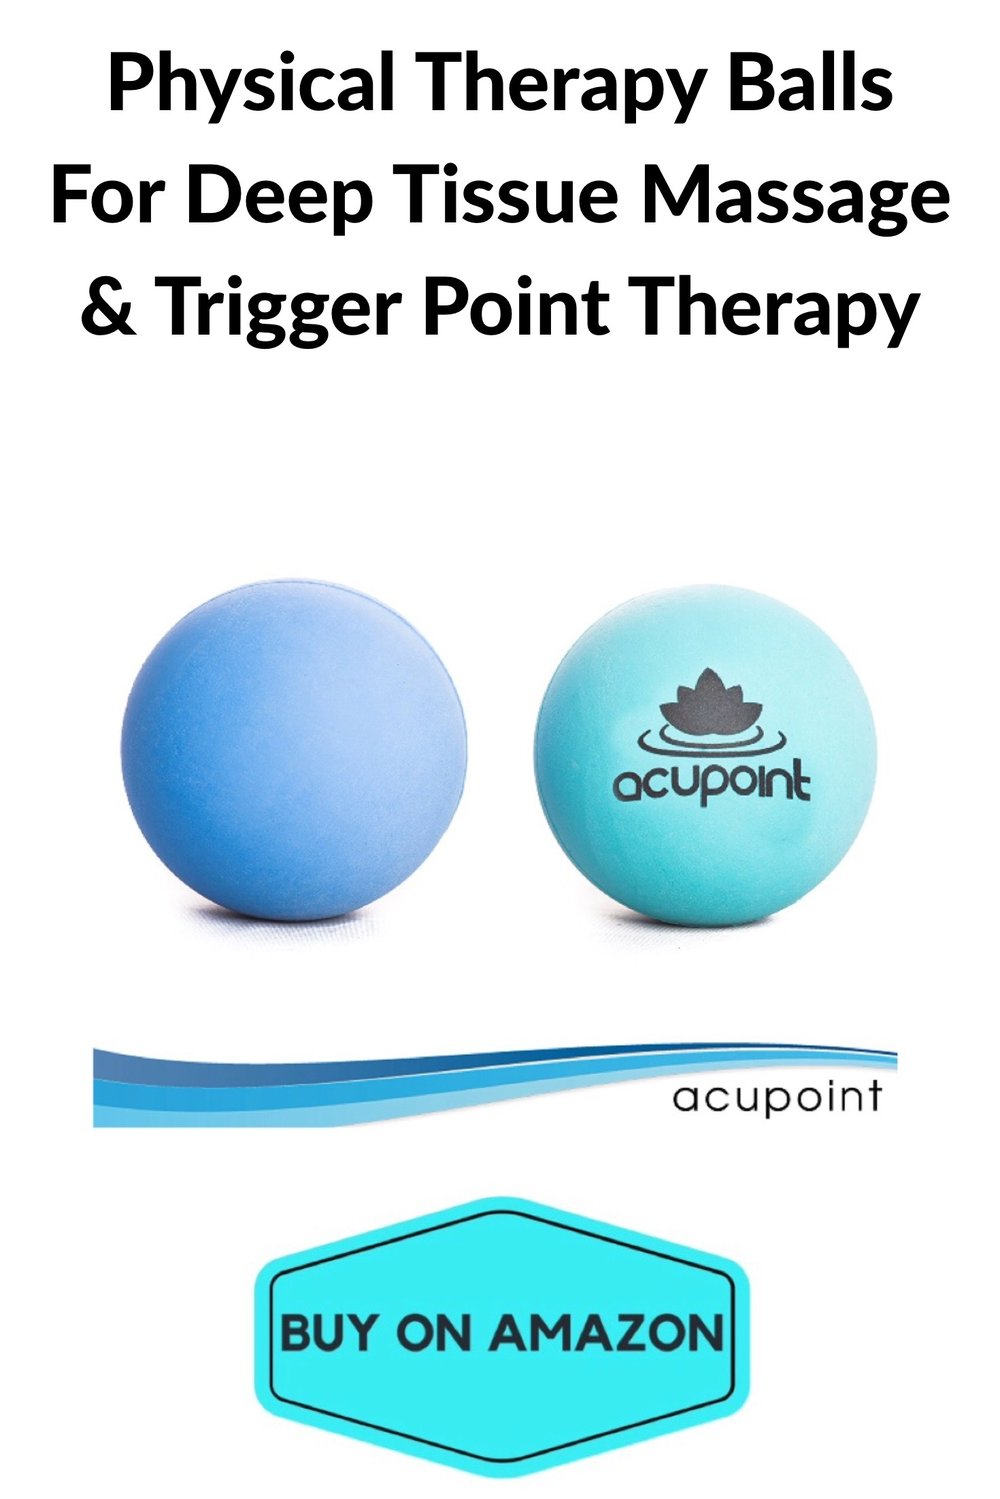 Physical Therapy Balls For Deep Tissue Massage